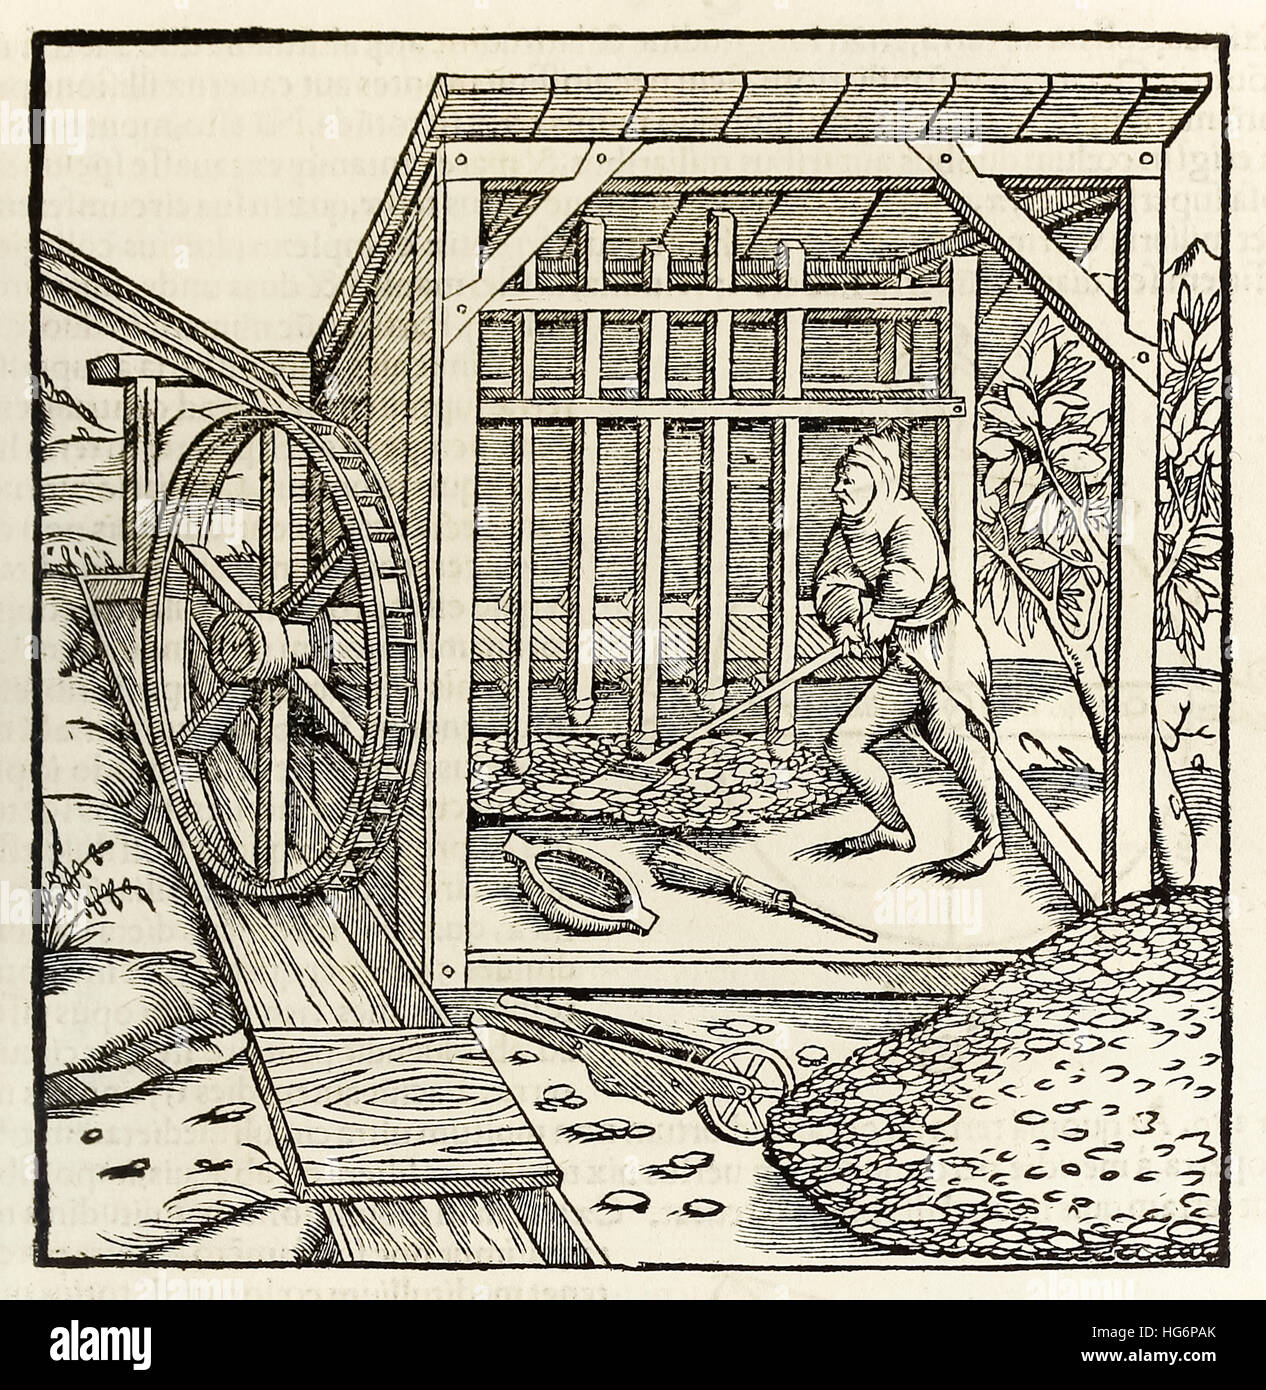 Mining with water wheel, woodcut from 1550 edition of 'Cosmographia' by  Sebastian Munster (1488-1552). See description - Stock Image